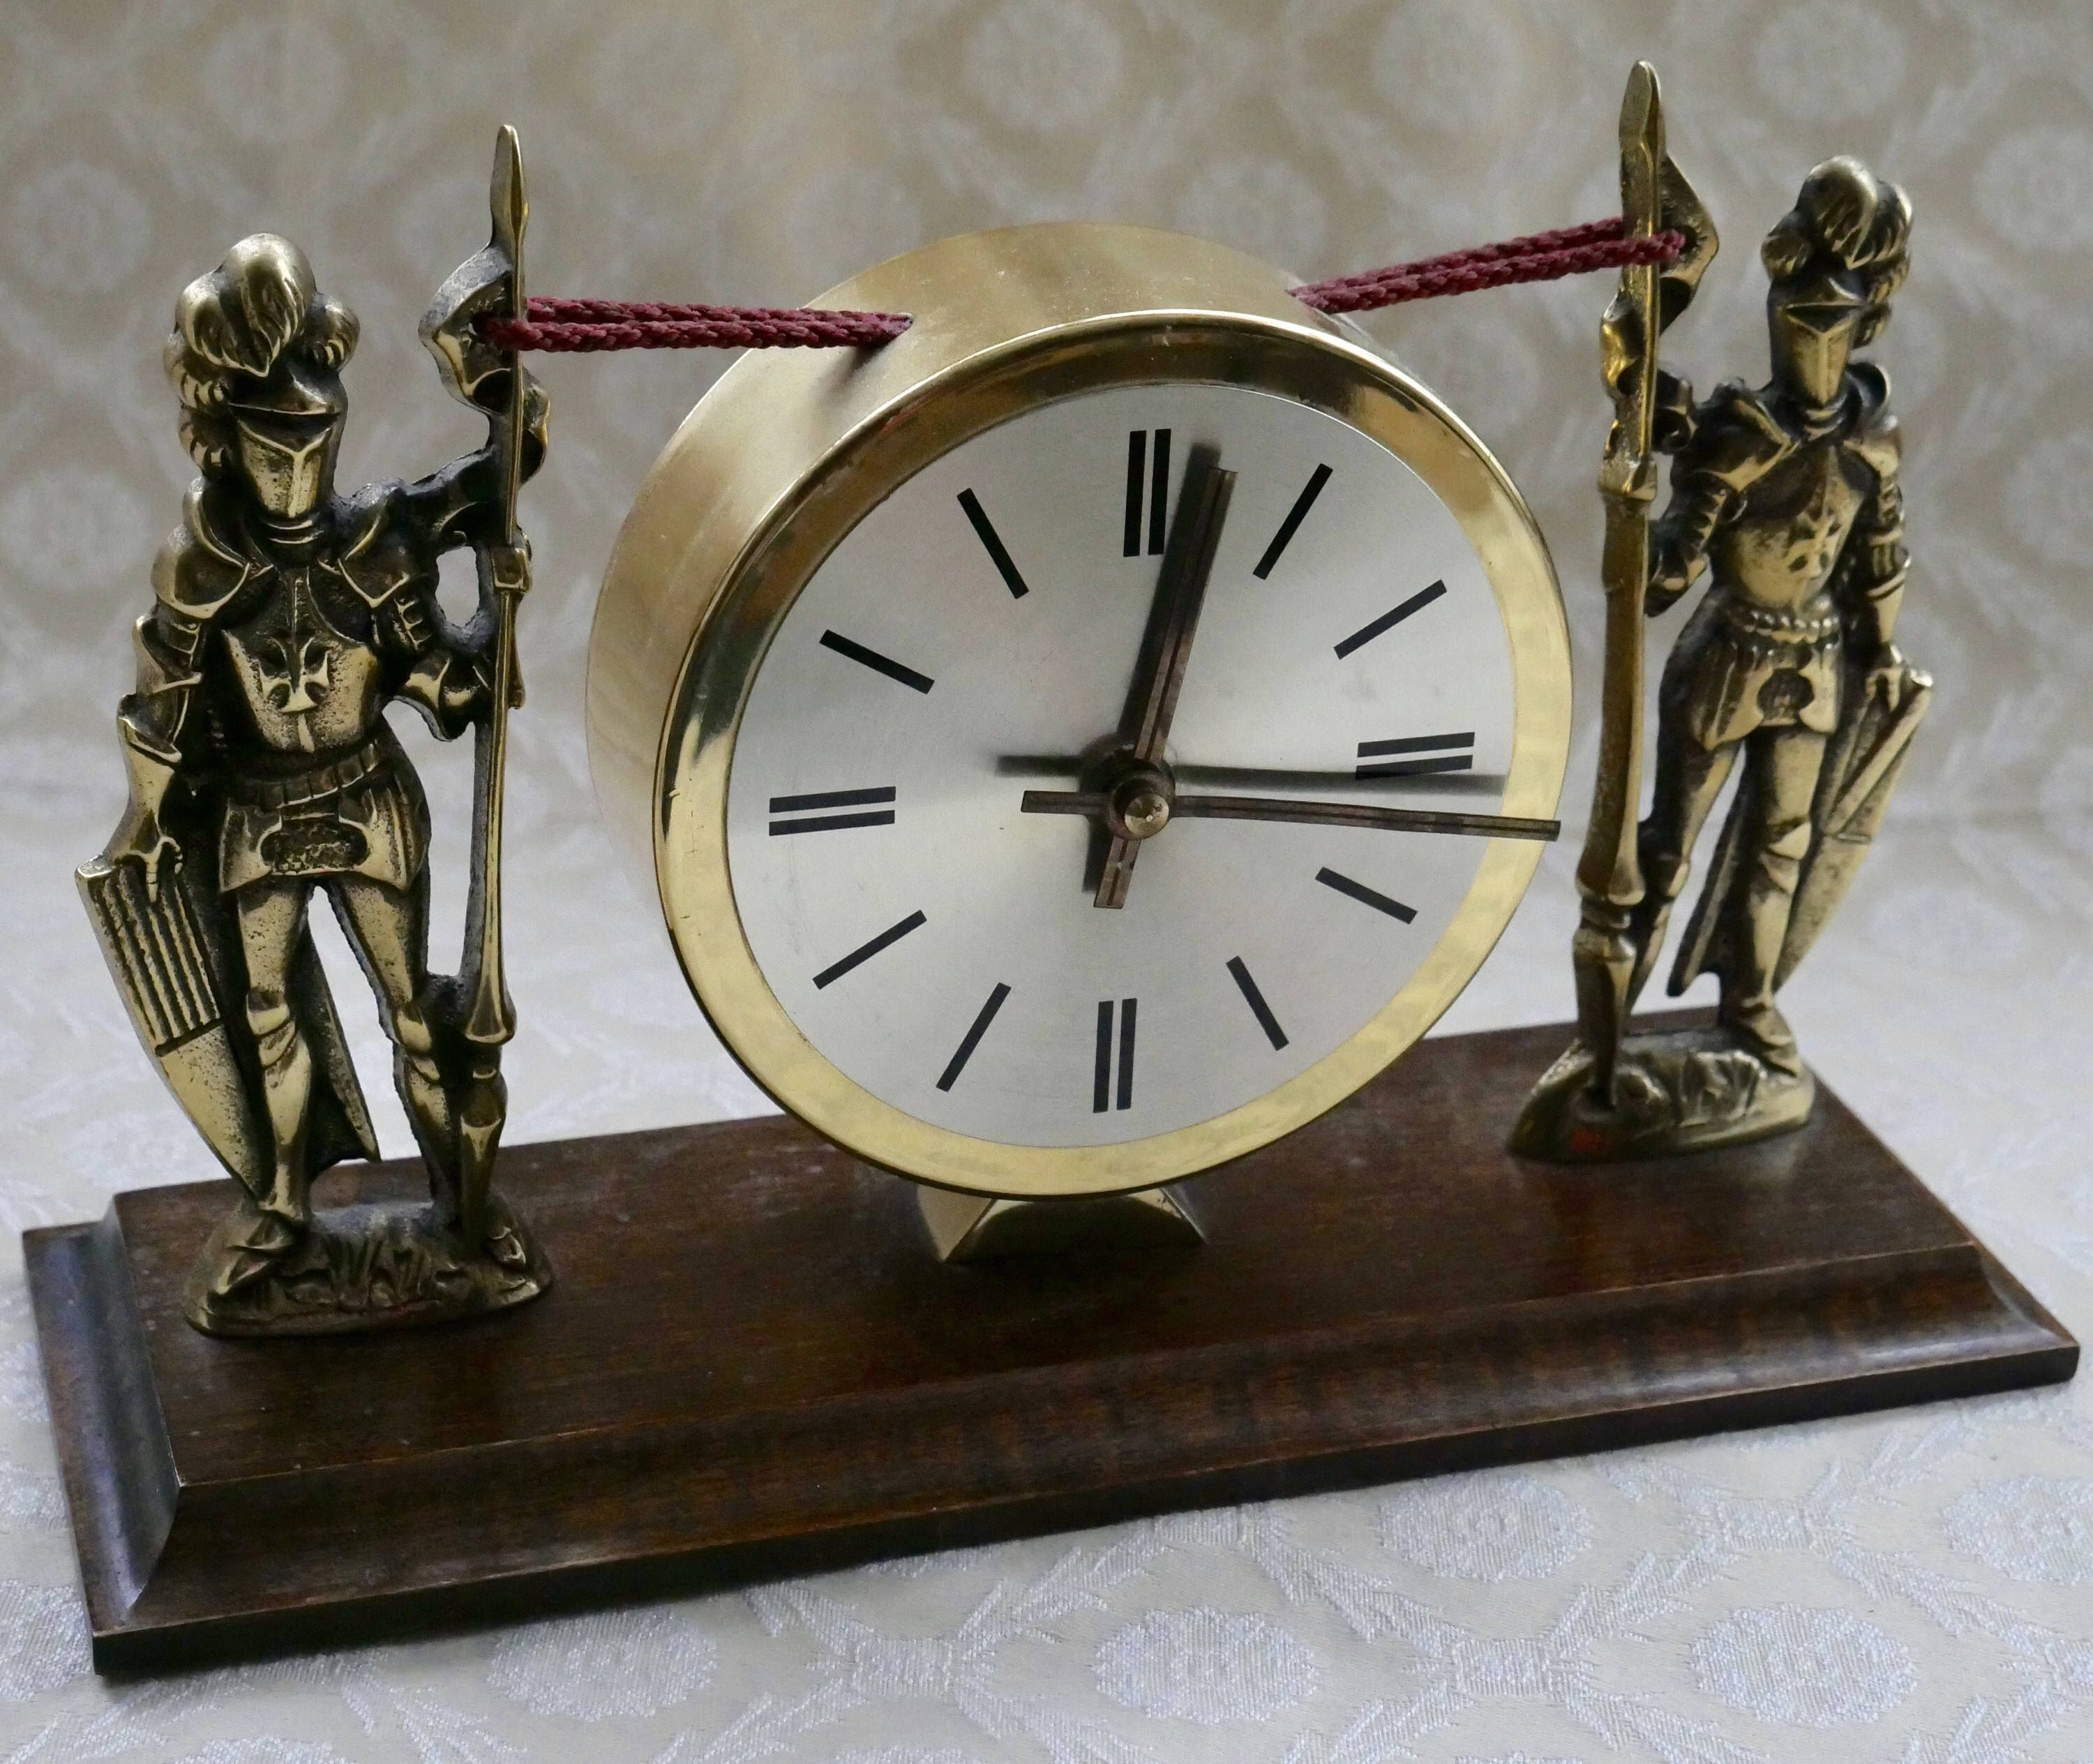 Vintage Mantle Clock Knight In Armour Wood Base Br Look Battery Operated